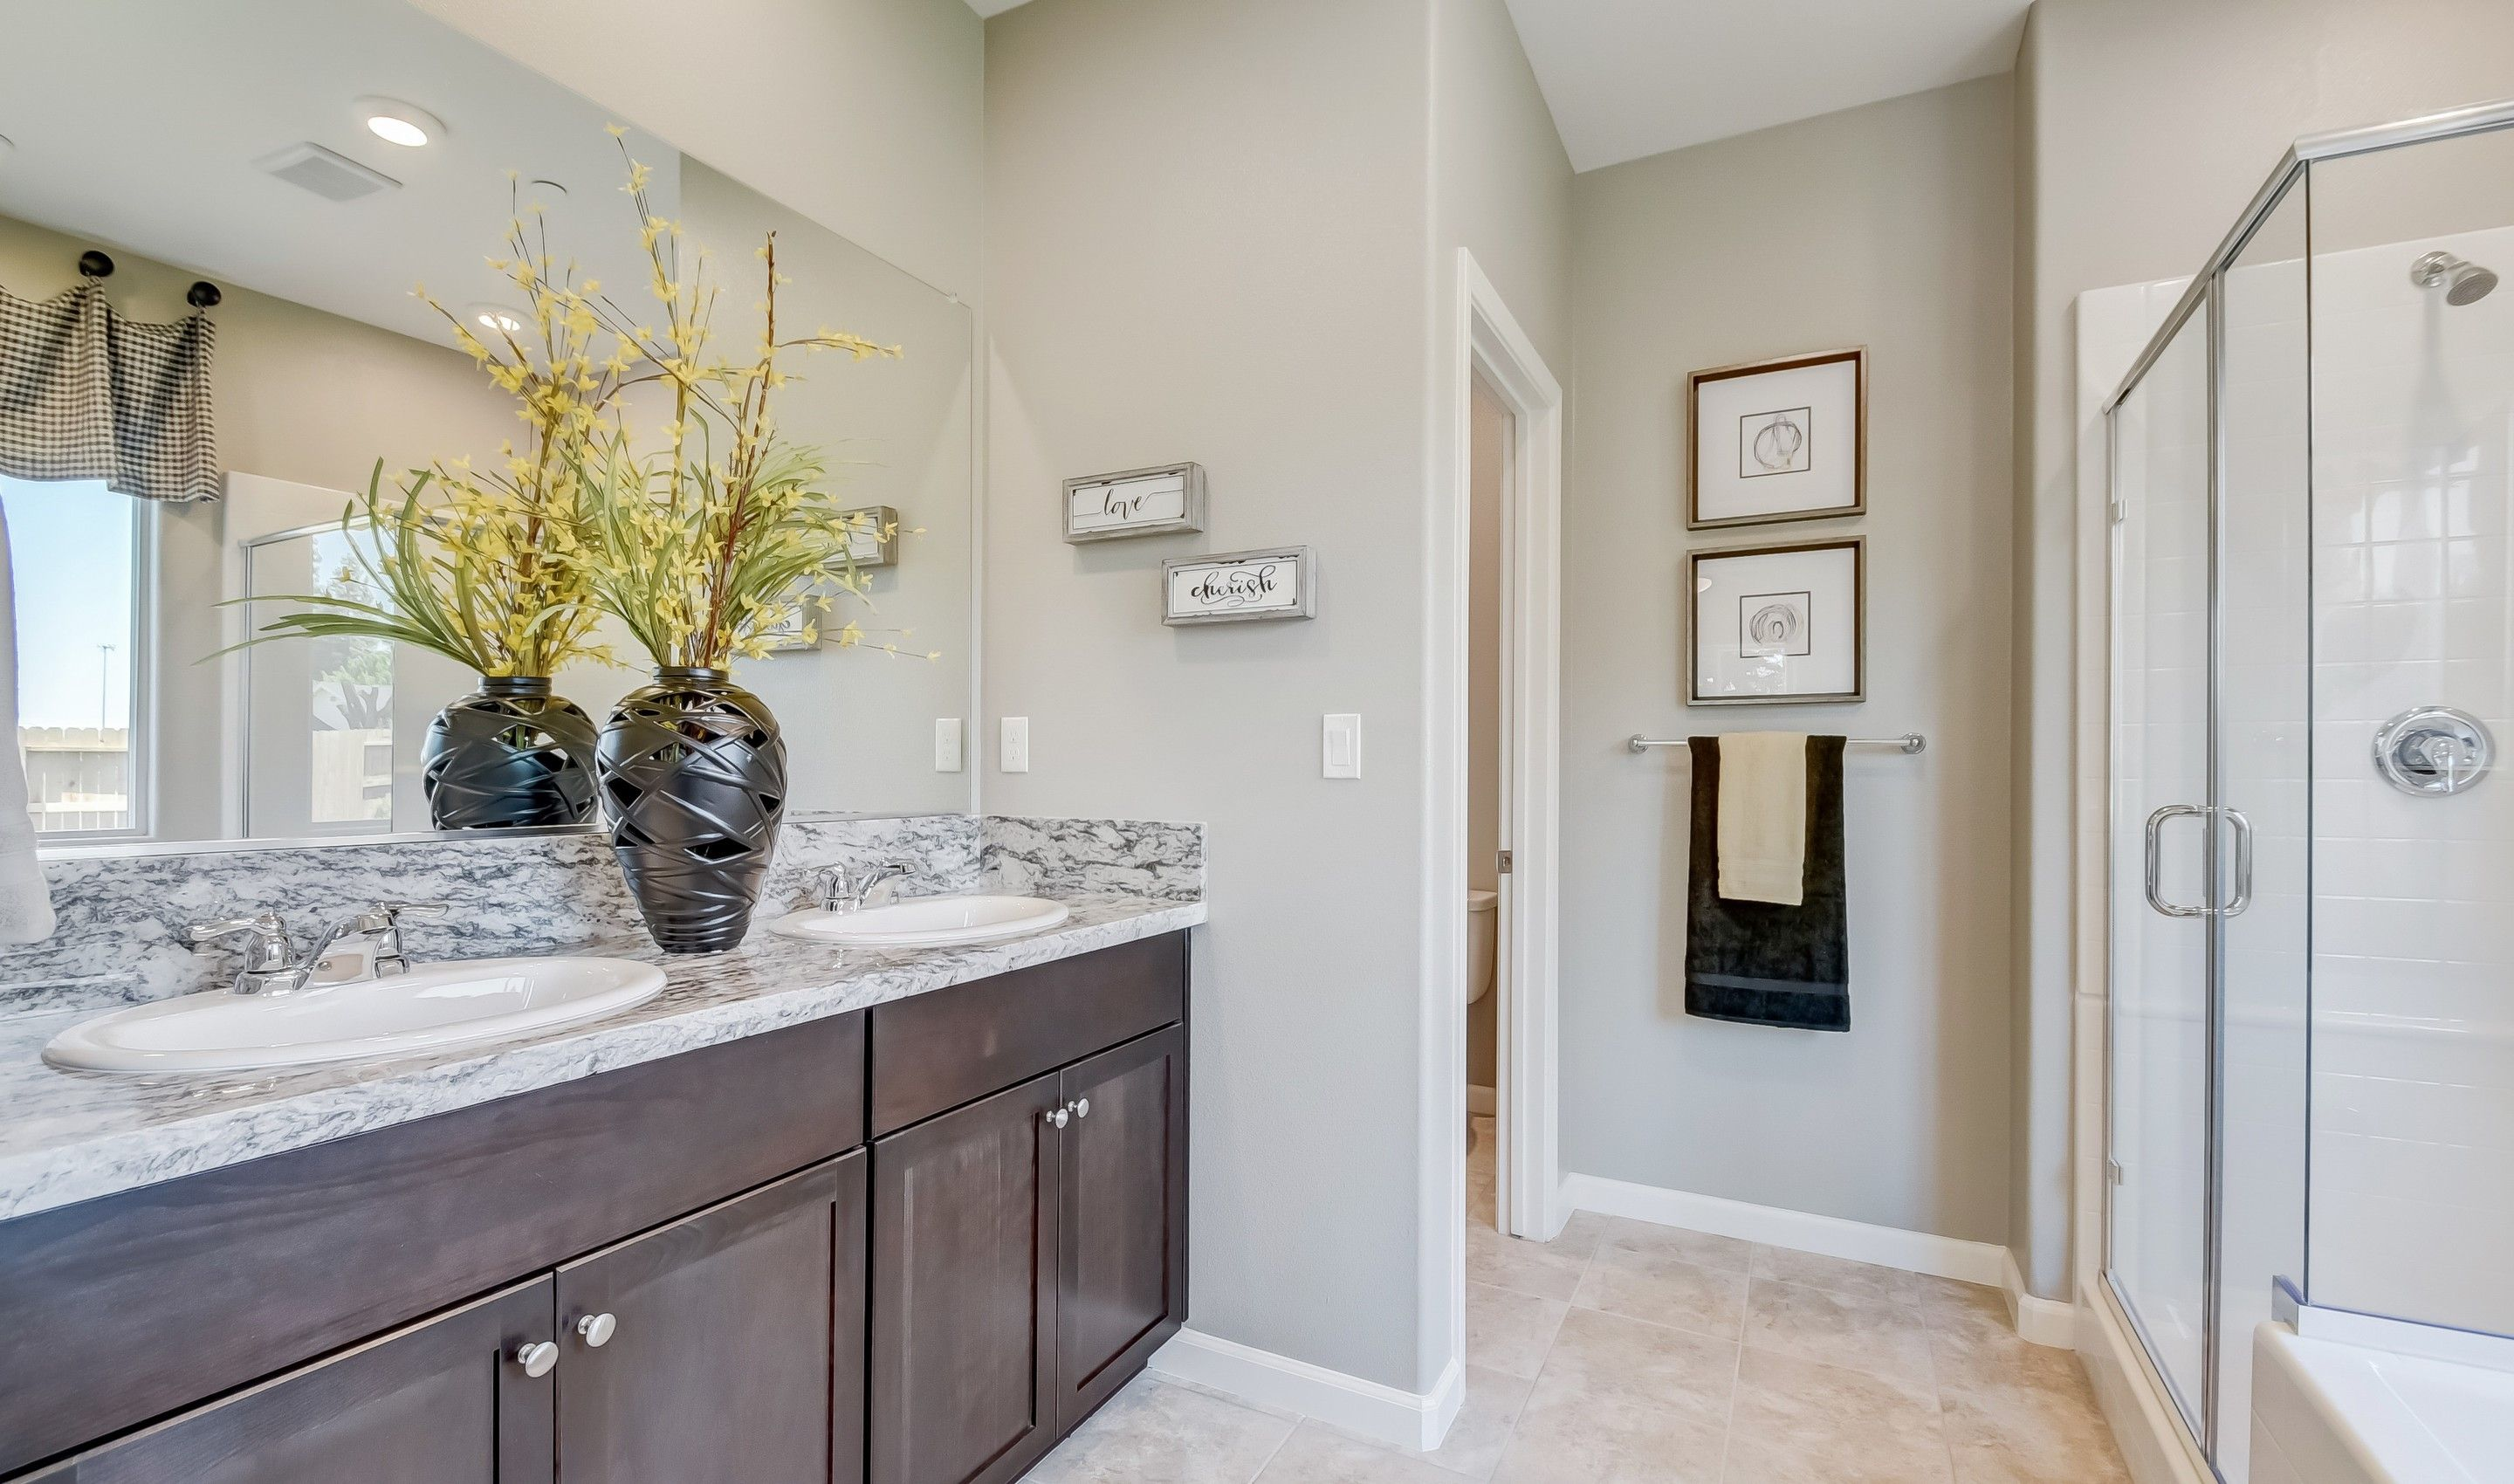 Bathroom featured in the Paso Fino By K. Hovnanian® Homes in Fresno, CA